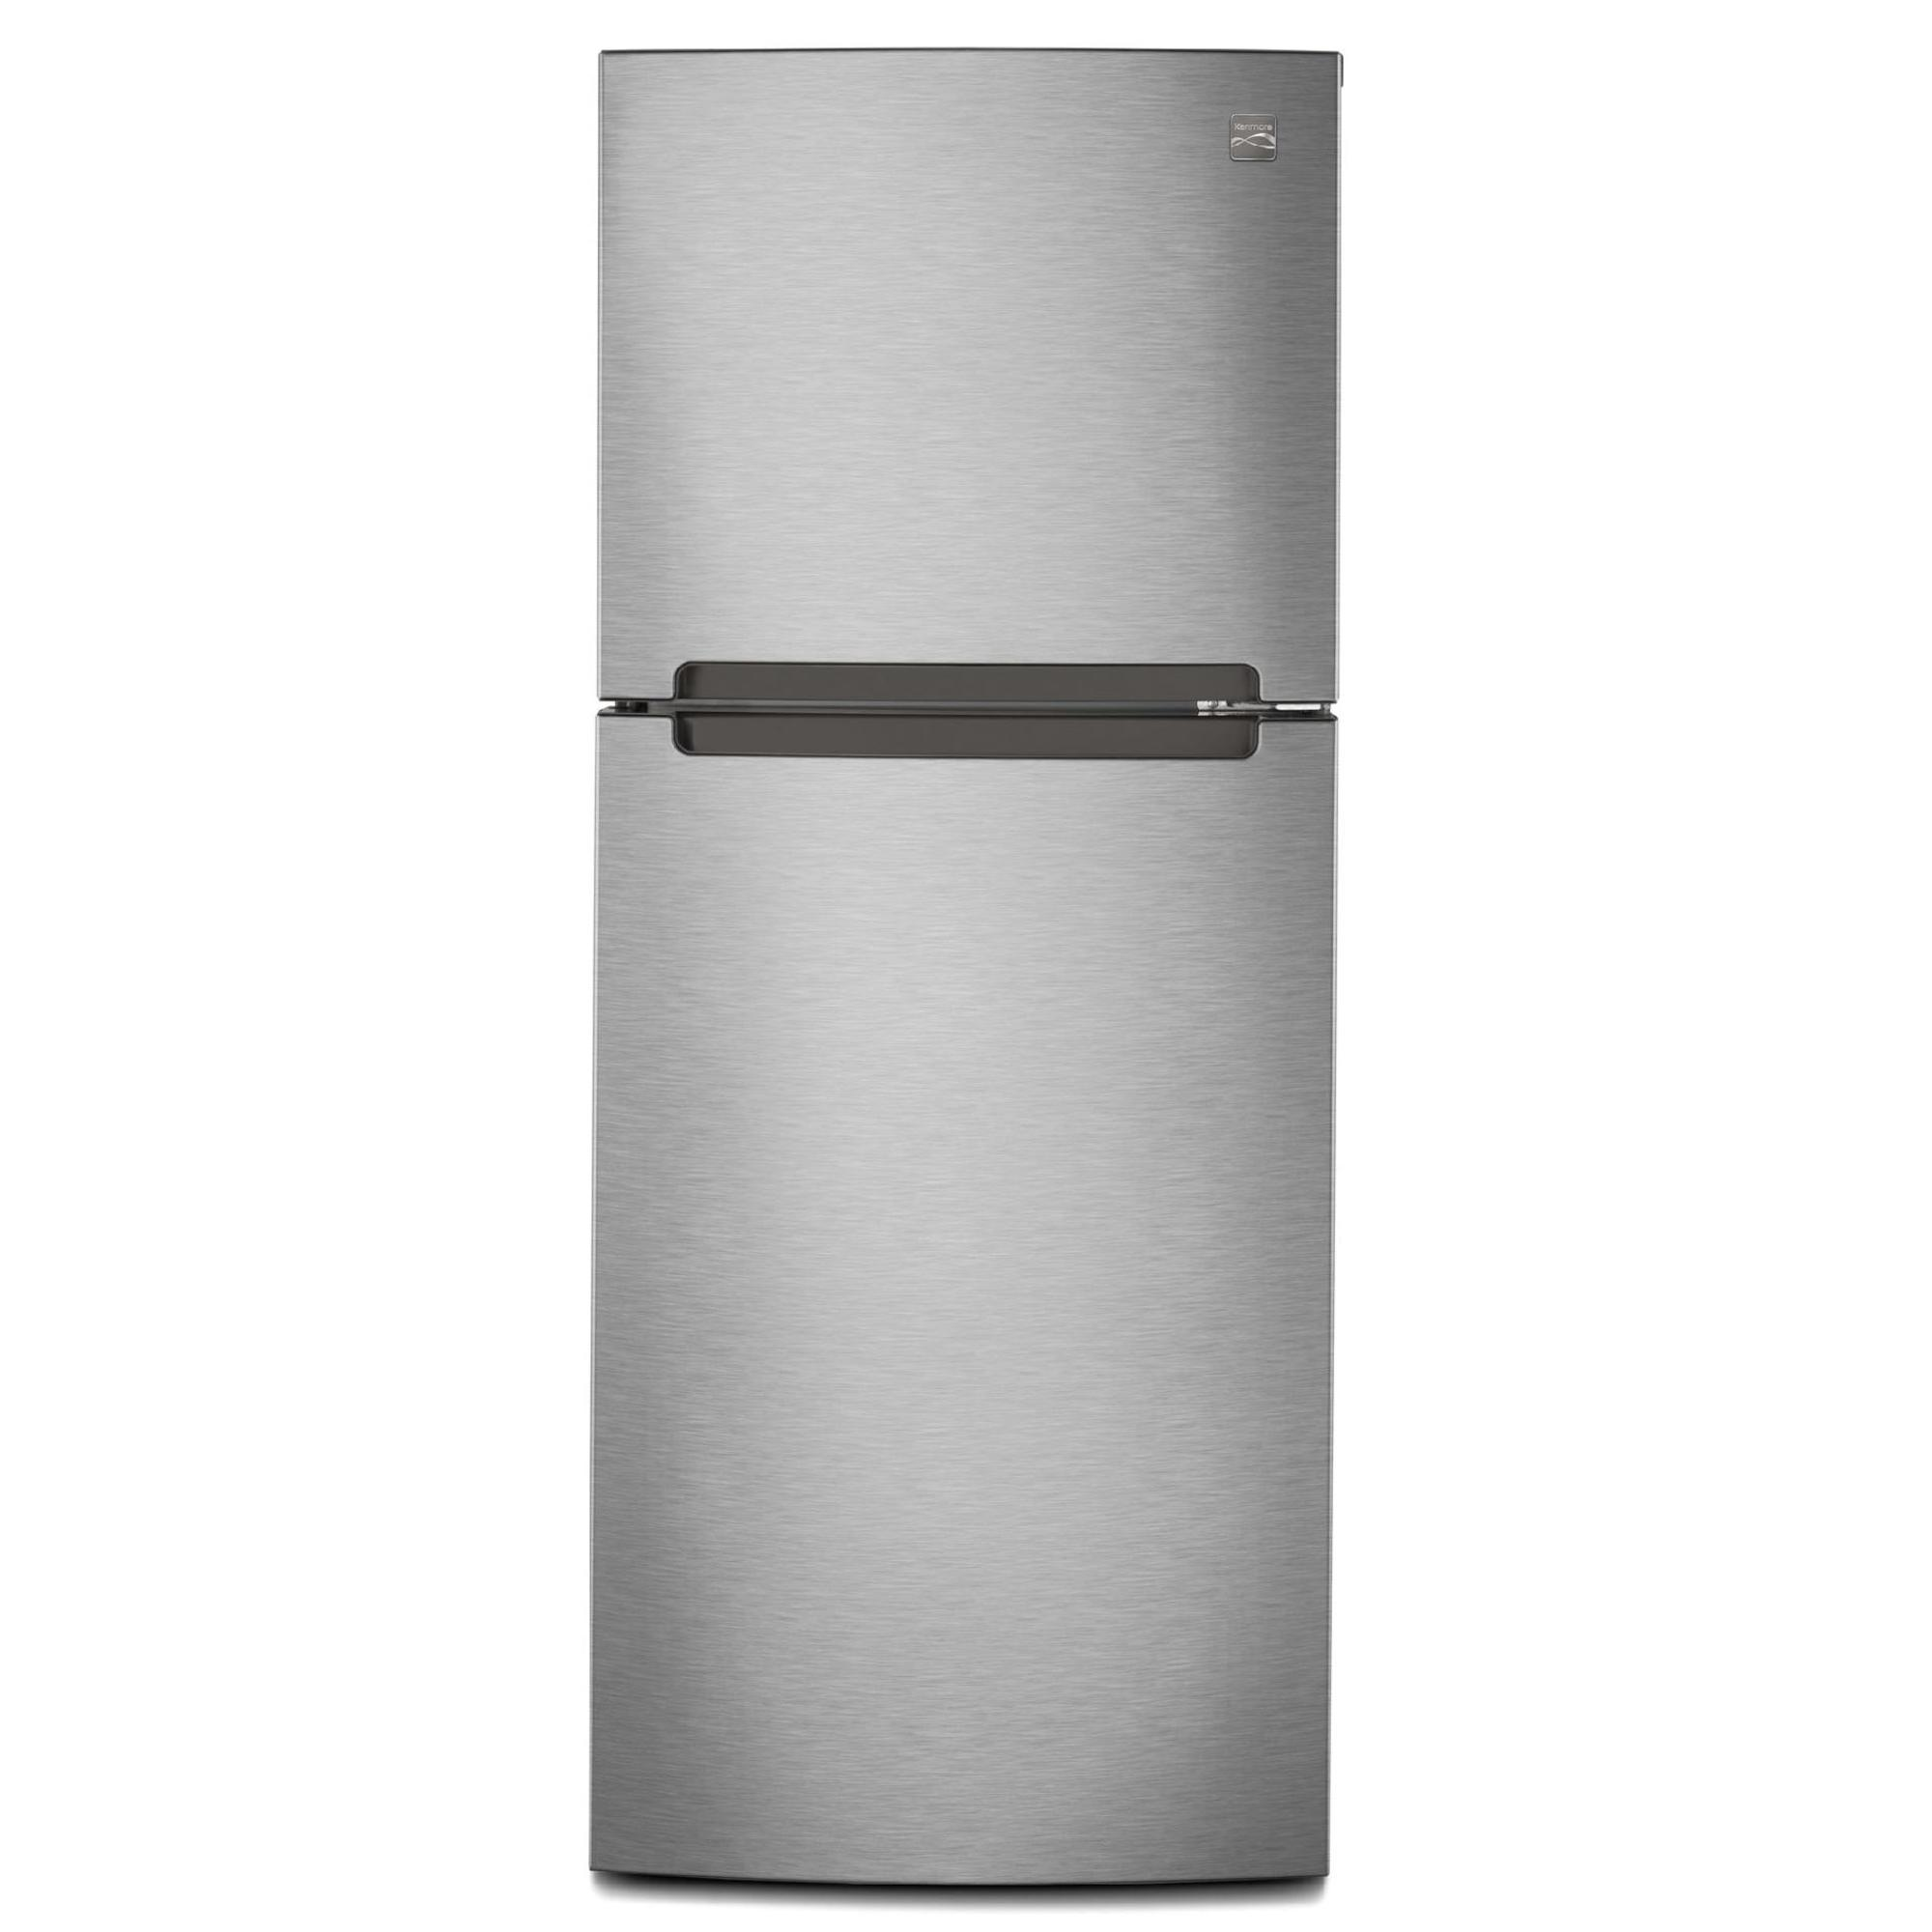 76393-10-7-cu-ft-Top-Freezer-Refrigerator-w-Humidity-Controlled-Crisper-Stainless